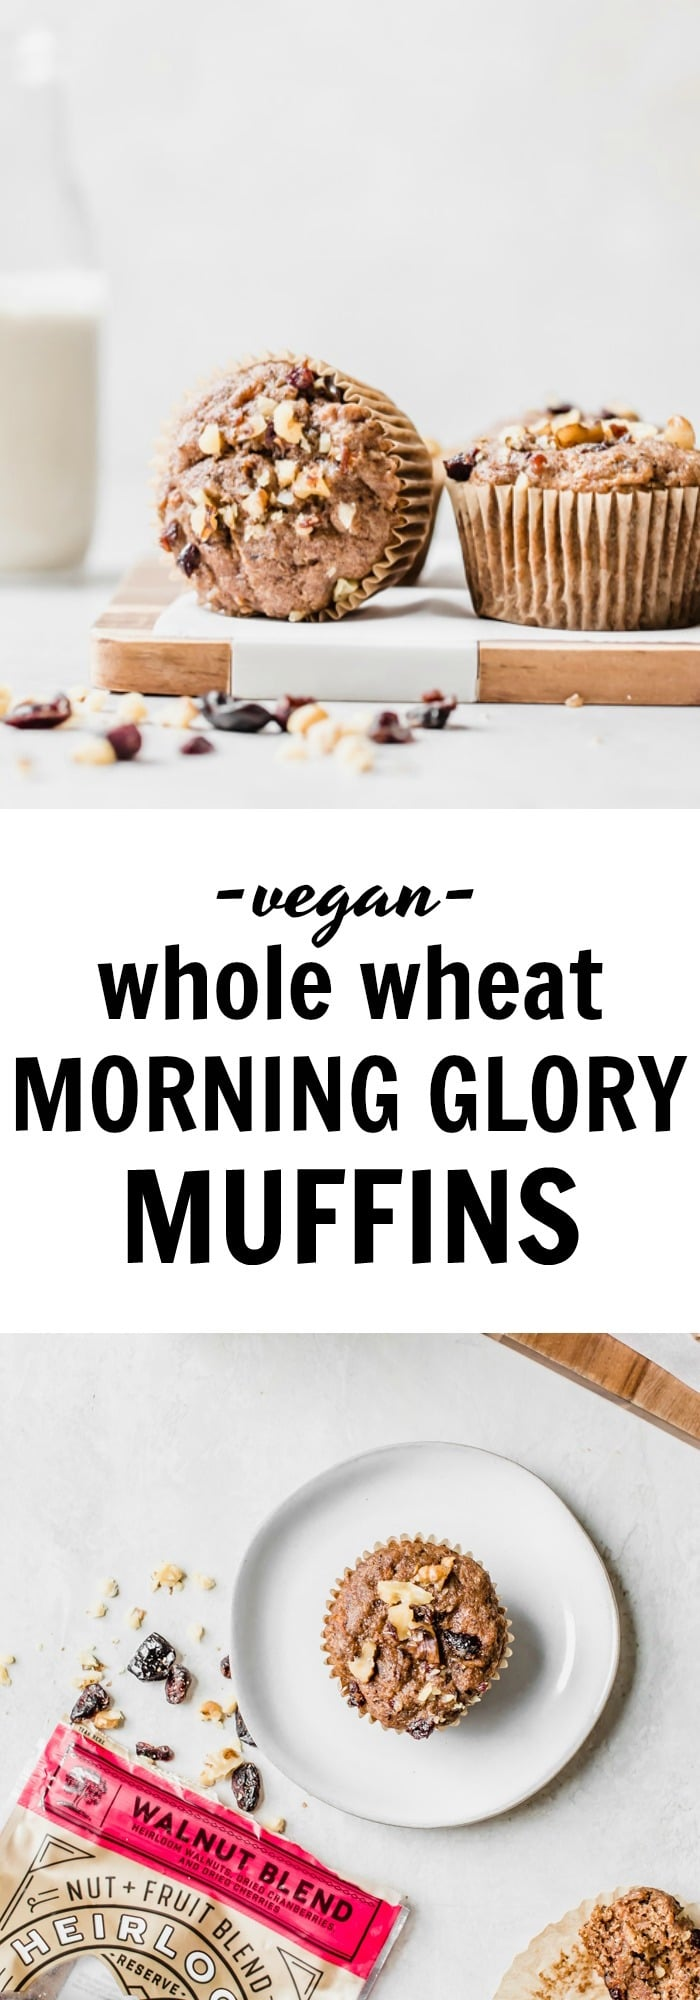 #vegan Morning Glory Muffins made with whole wheat flour for a HEALTHY breakfast muffin   thealmondeater.com